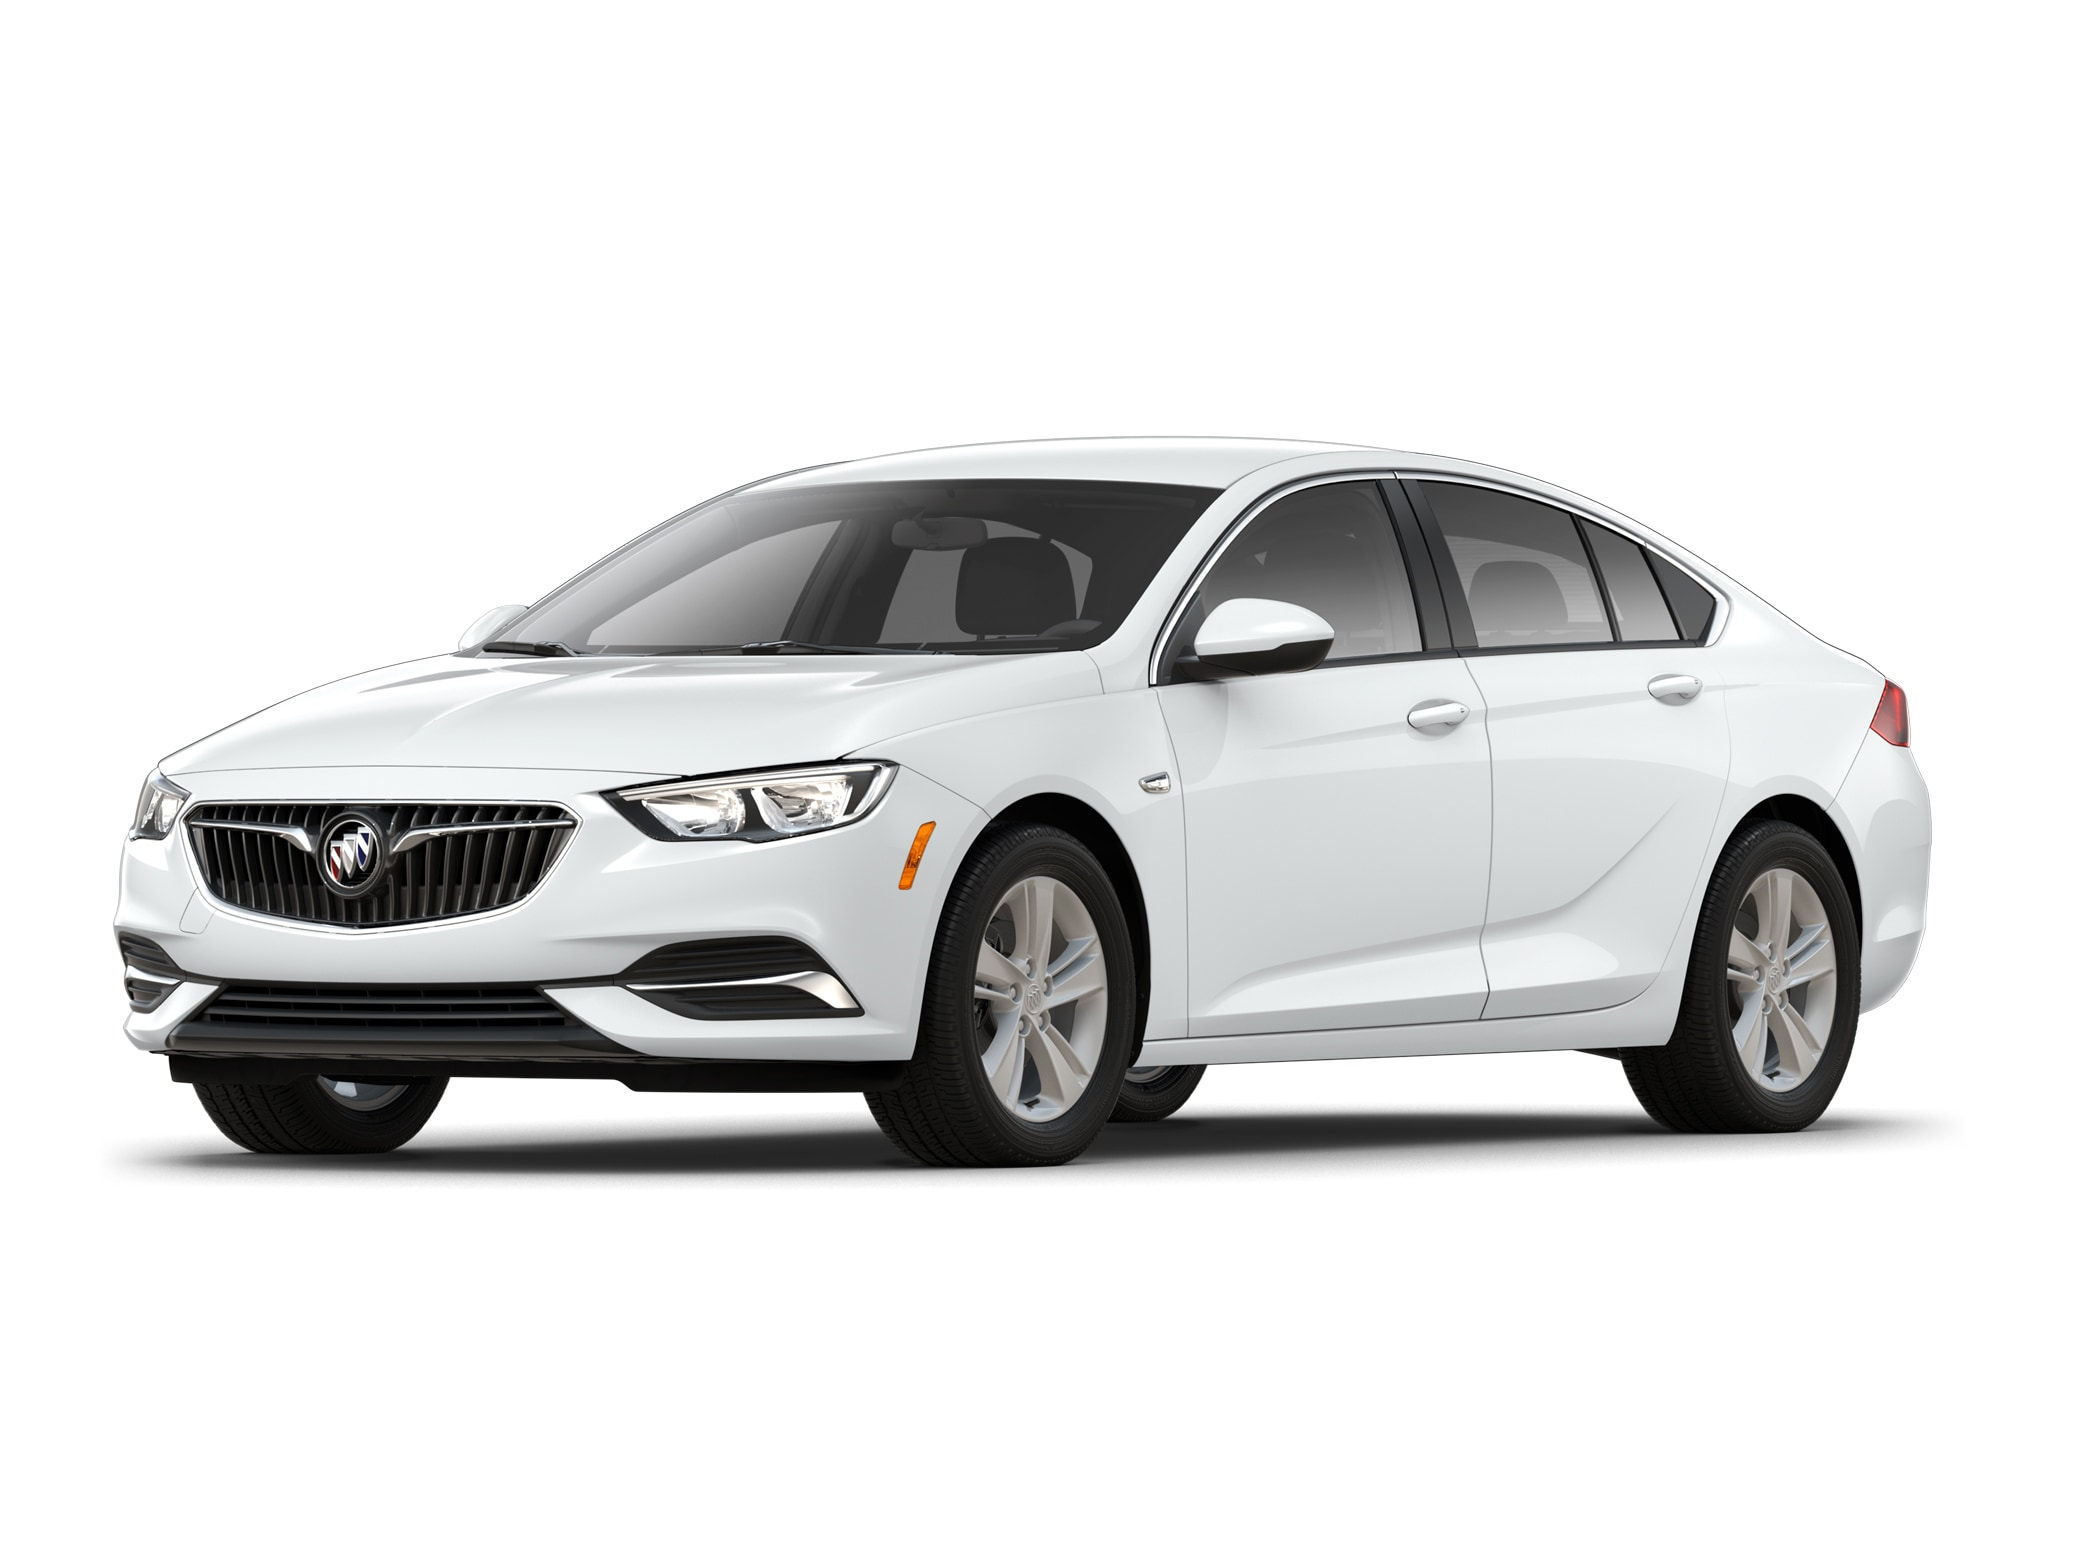 2019 buick regal sportback for sale in elmira ny